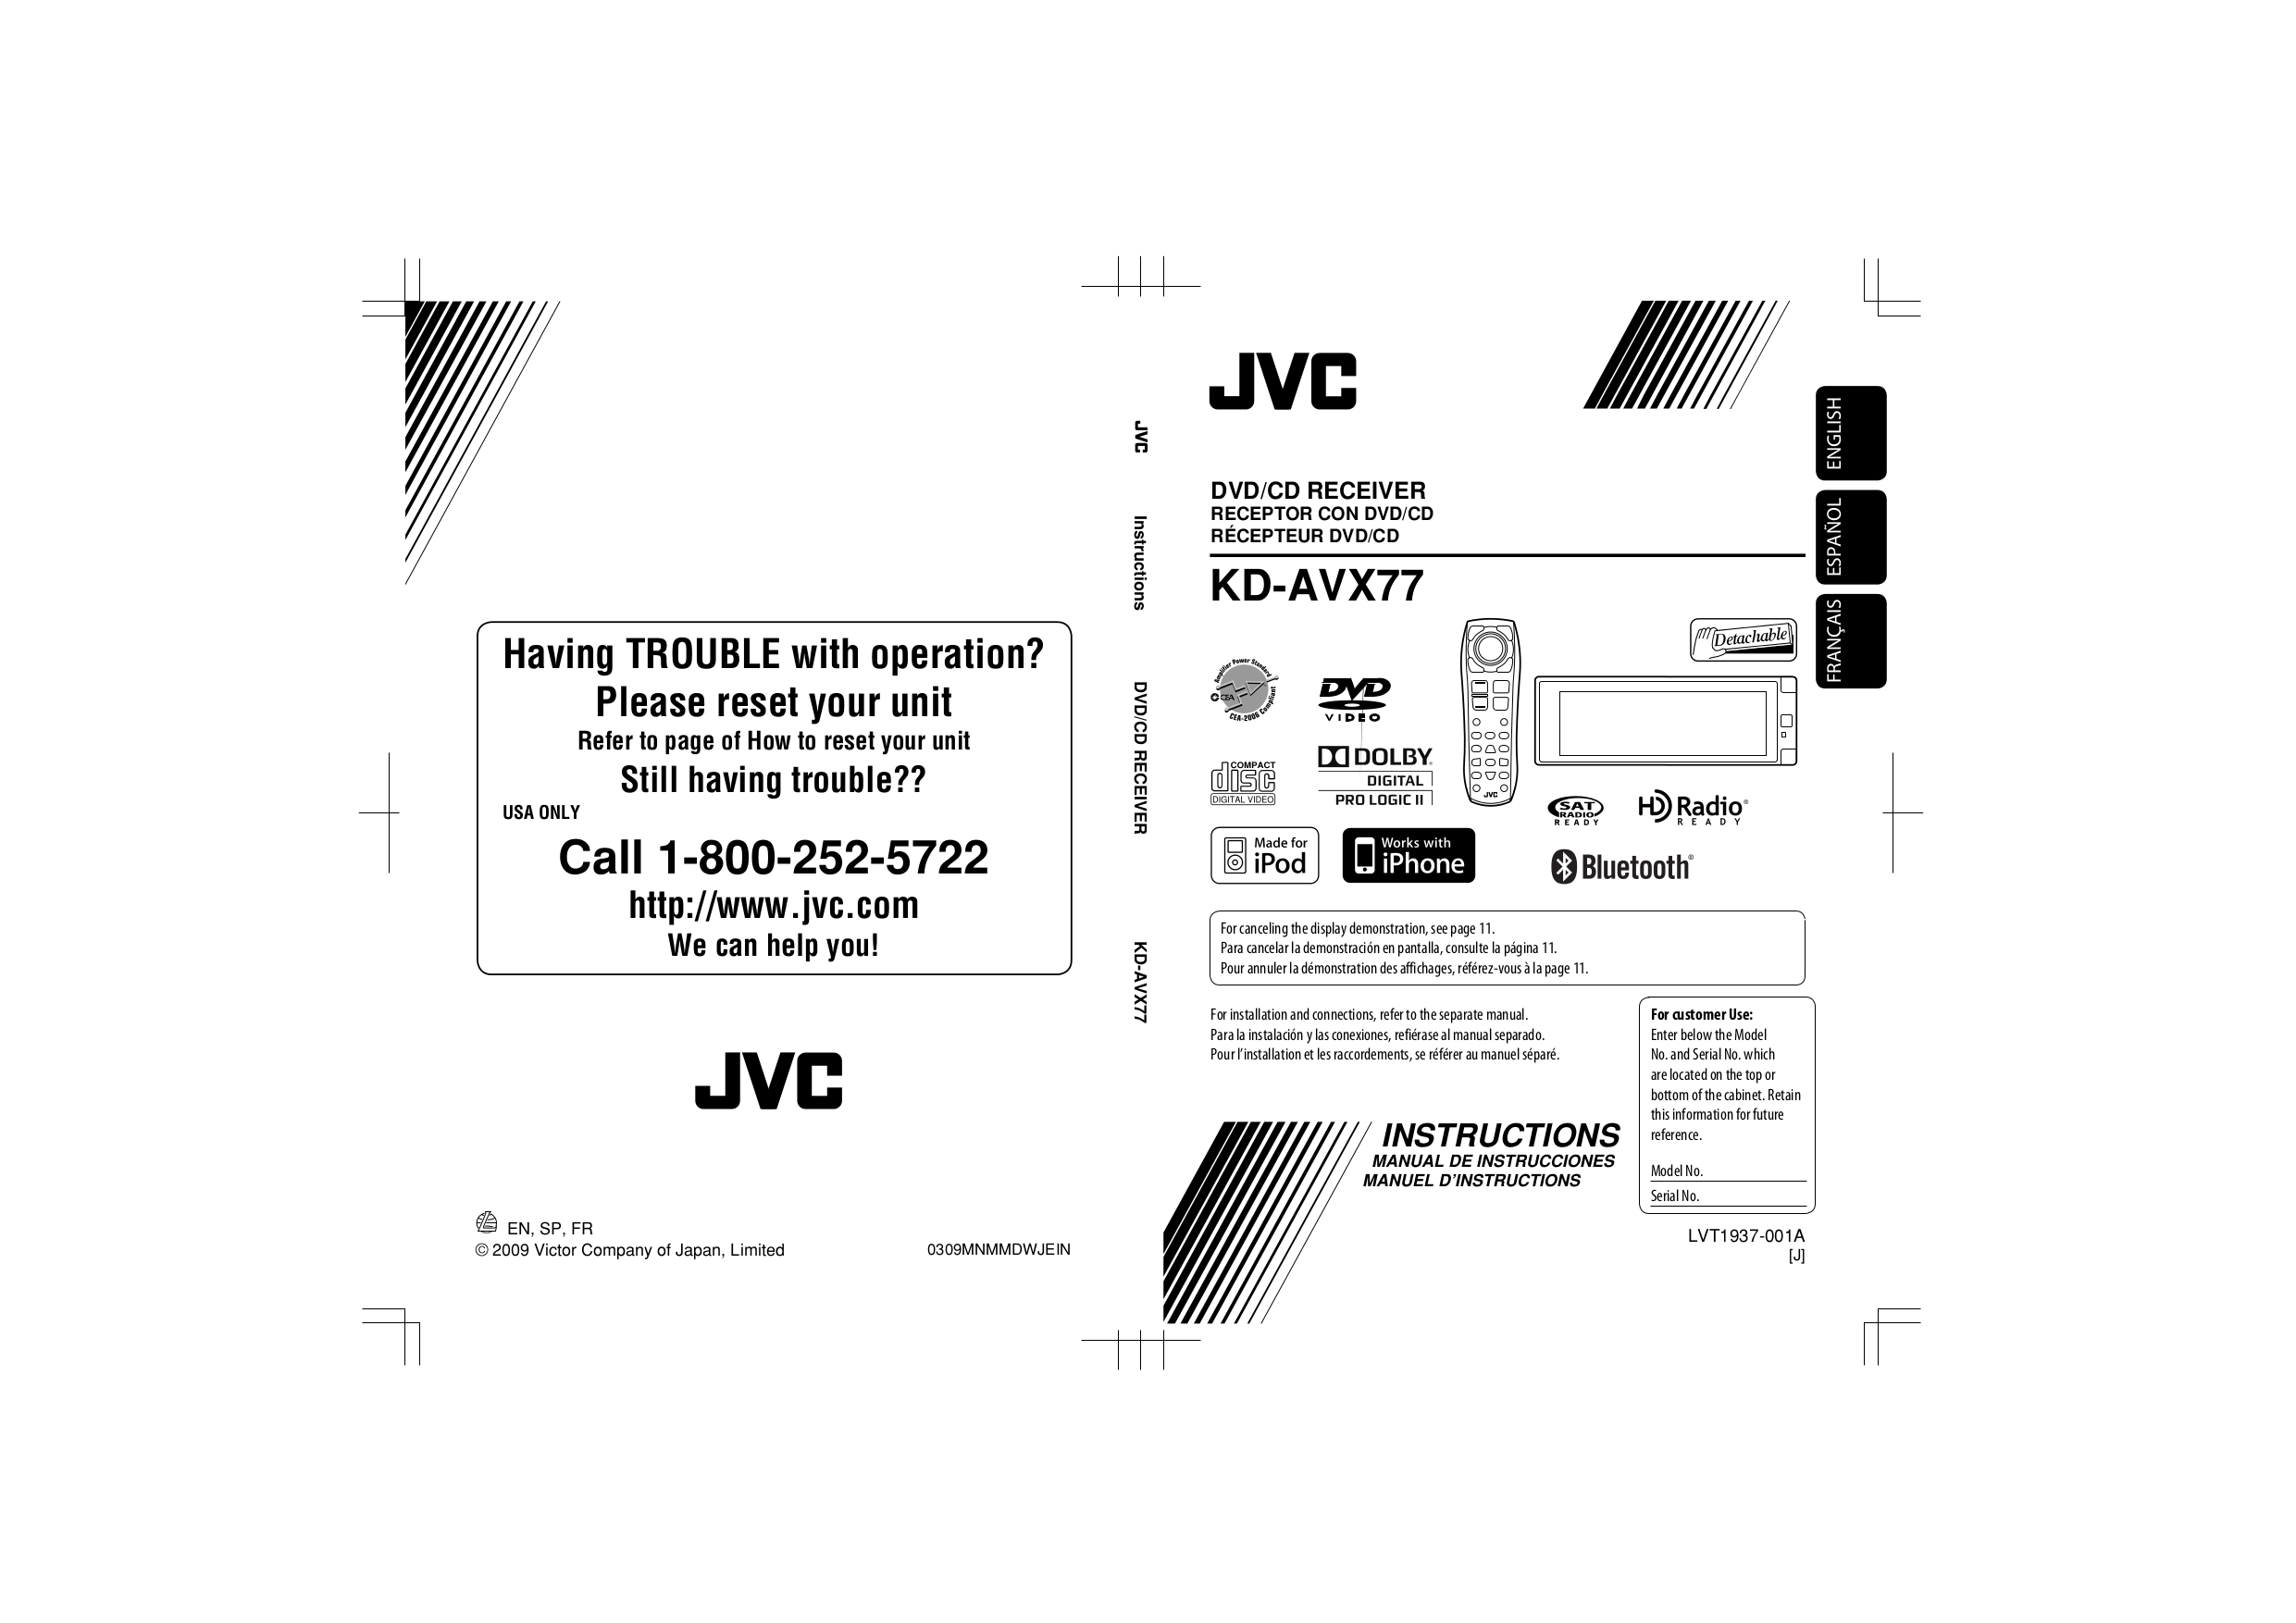 download free pdf for jvc ch x1500rf cd player manual rh umlib com jvc ch-x350 12-disc cd changer manual jvc ch-x350 12-disc cd changer manual